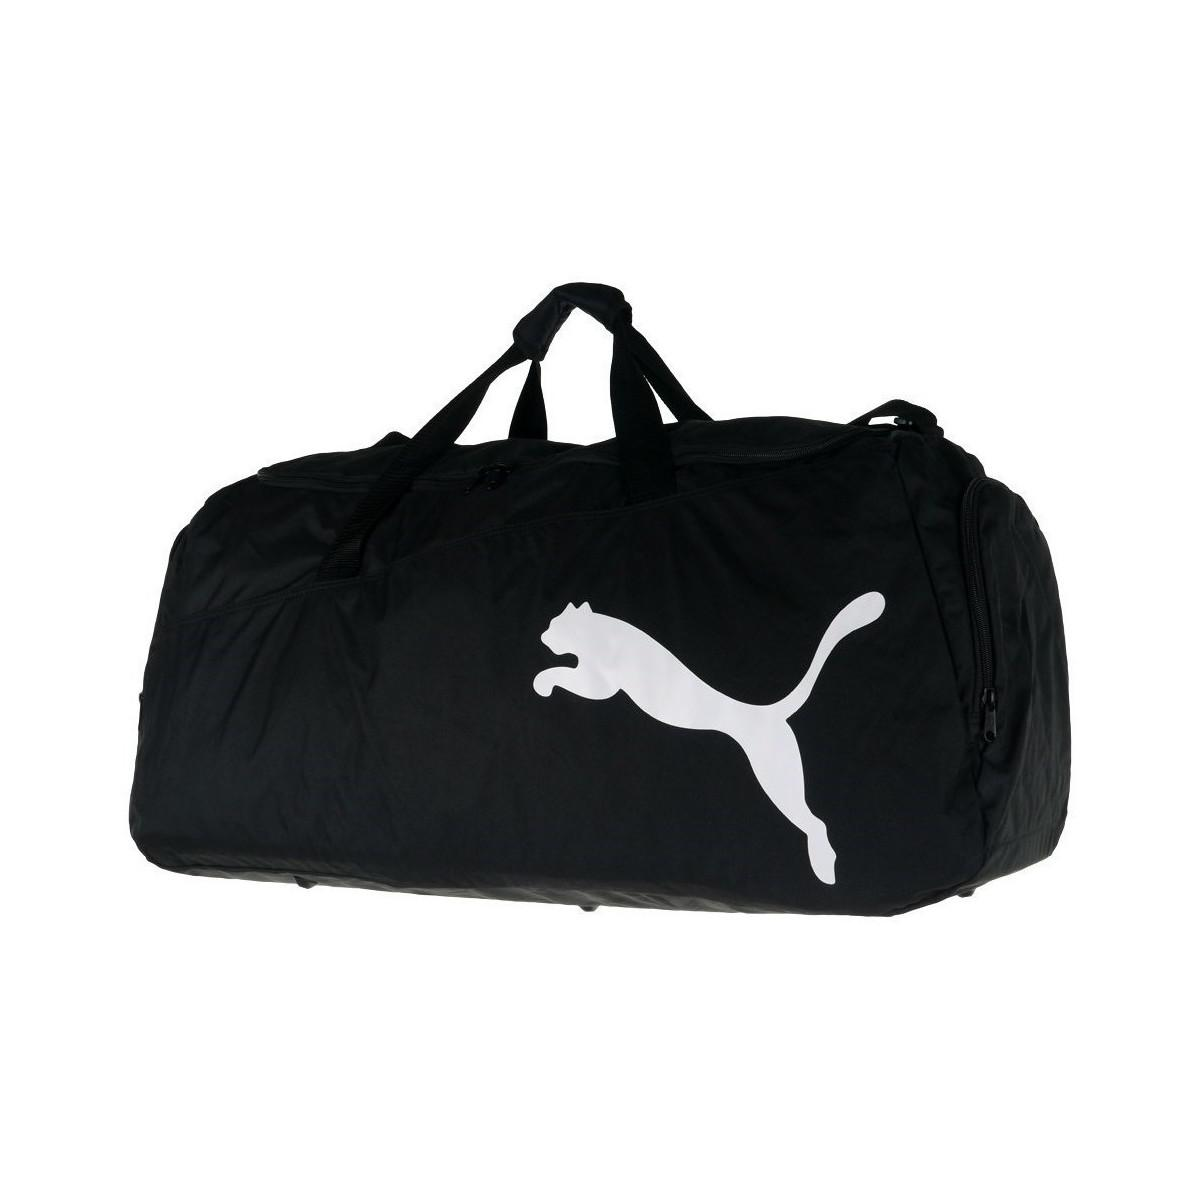 Puma Pro Training Large Bag Men s Sports Bag In Black in Black for ... 1acb92de269eb